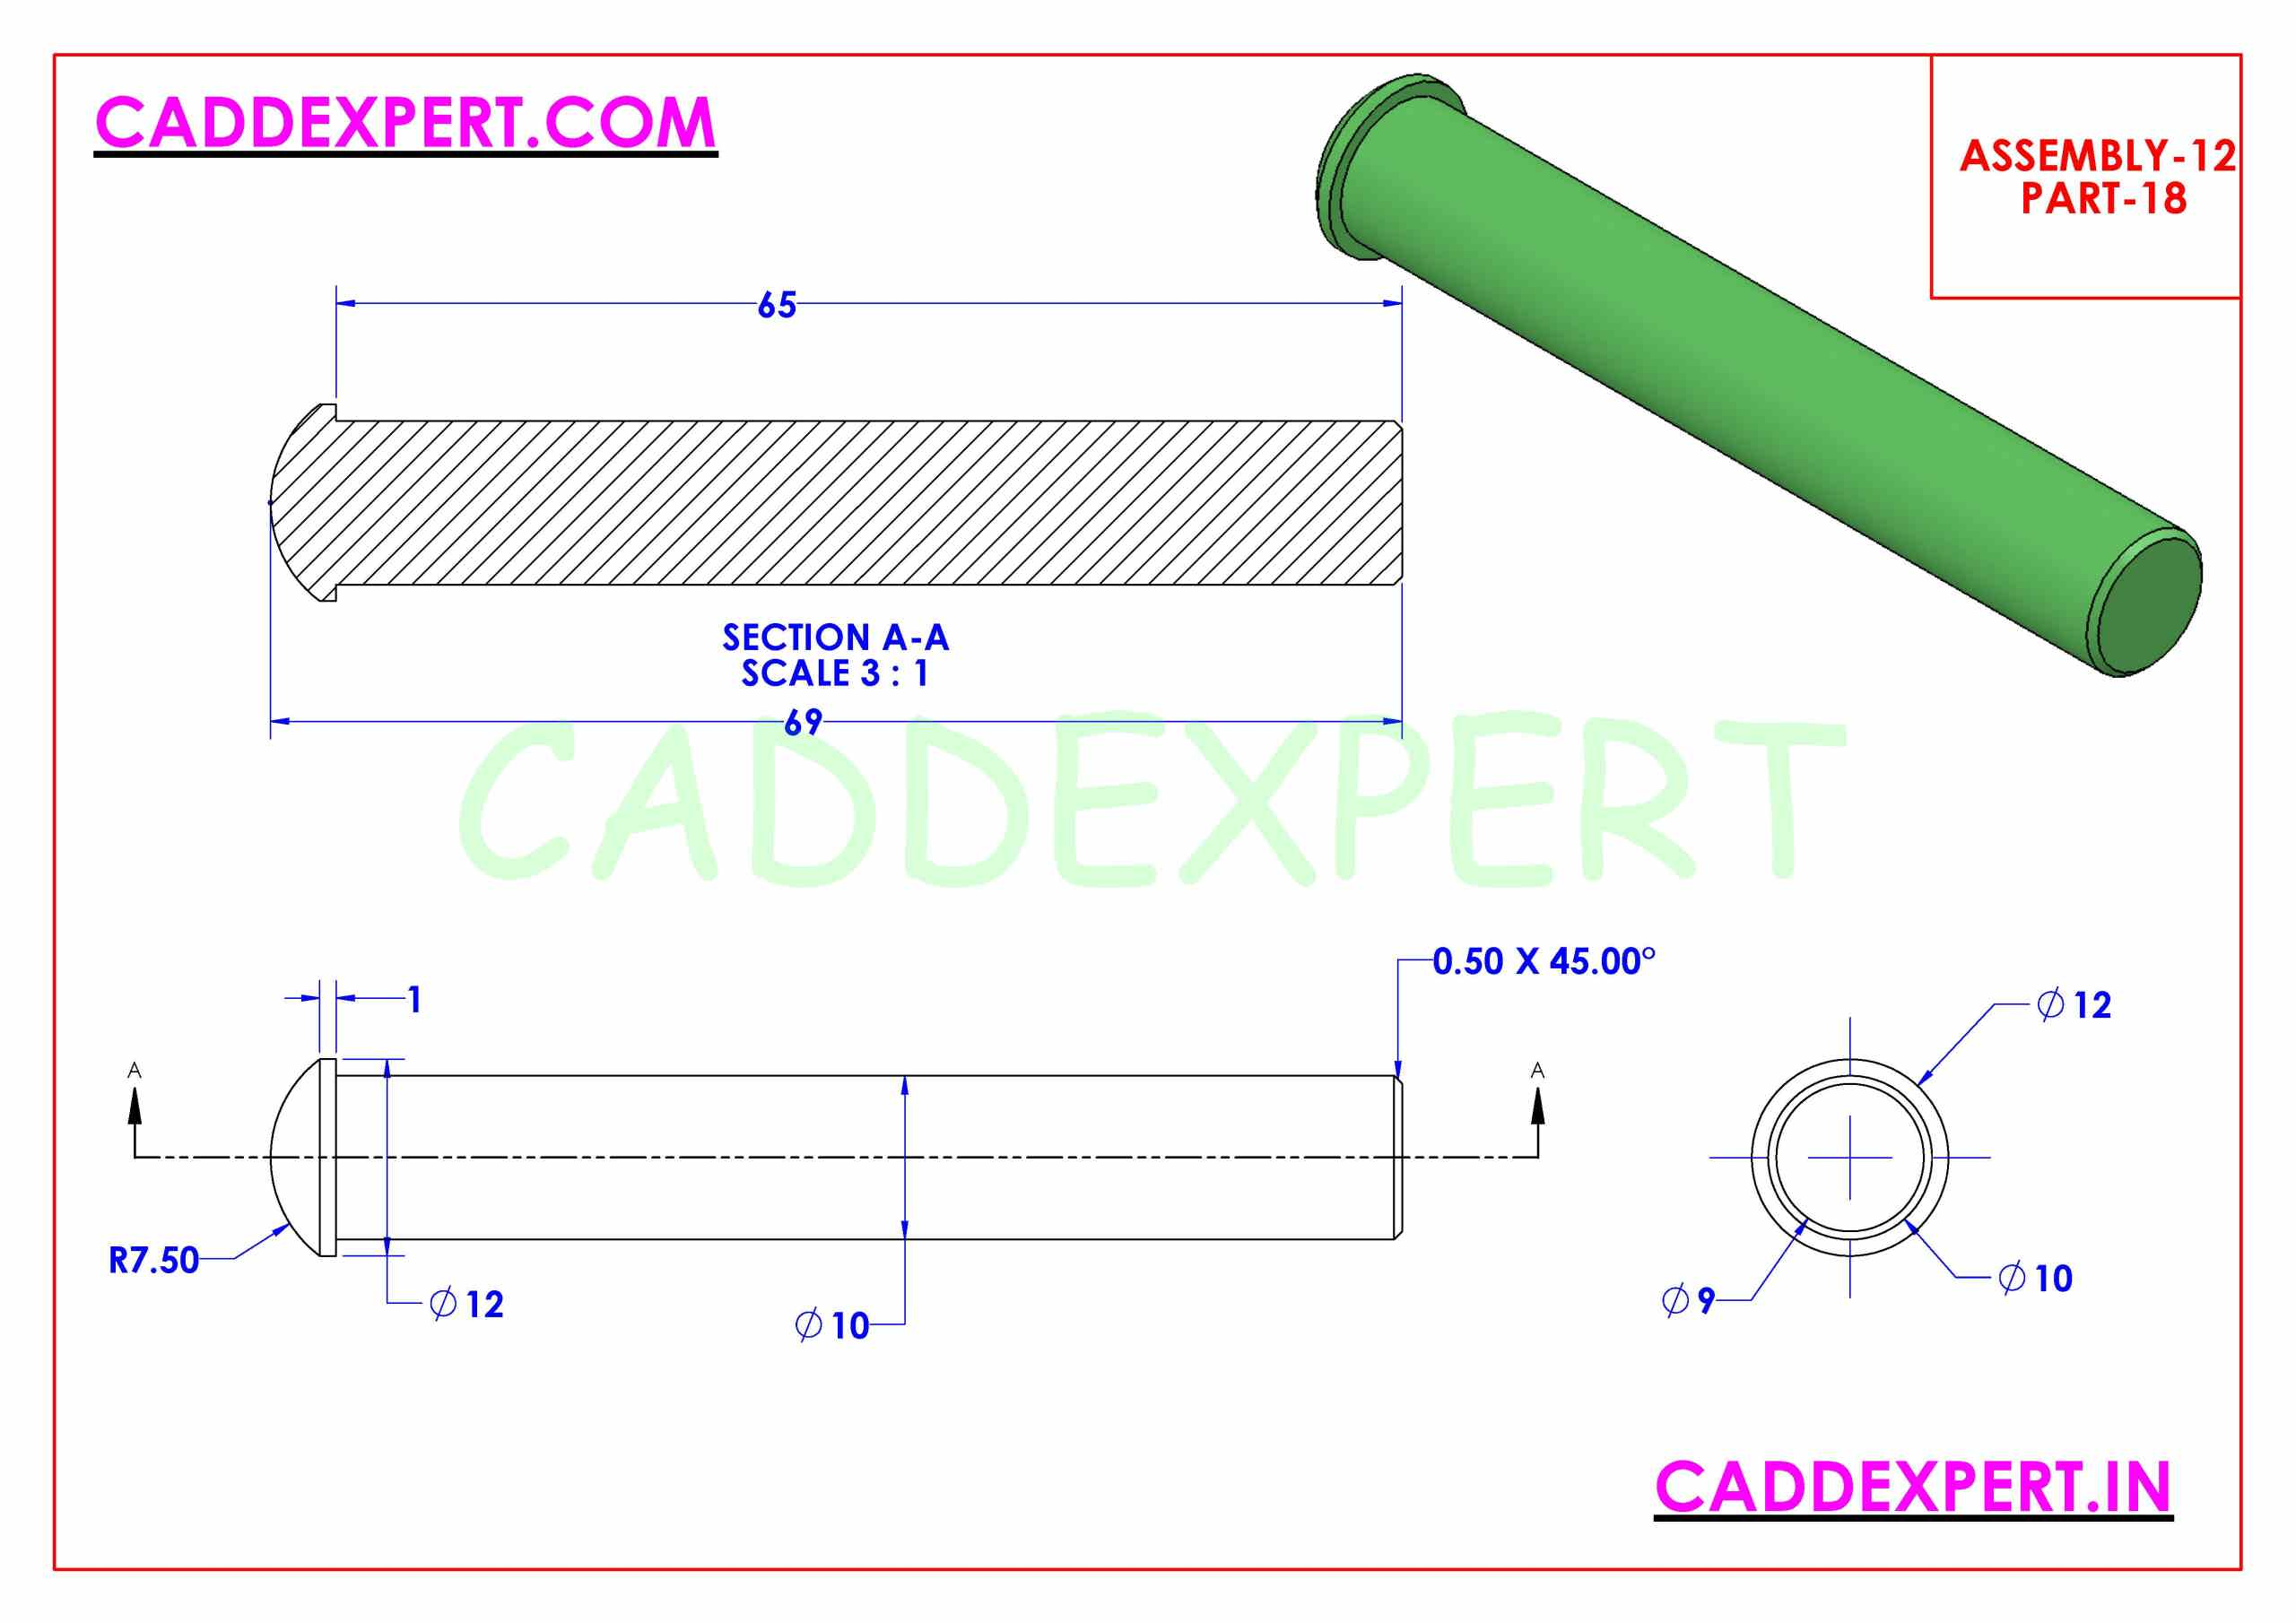 SOLIDWORKS ASSEMBLY JACK SCREW PART - 18